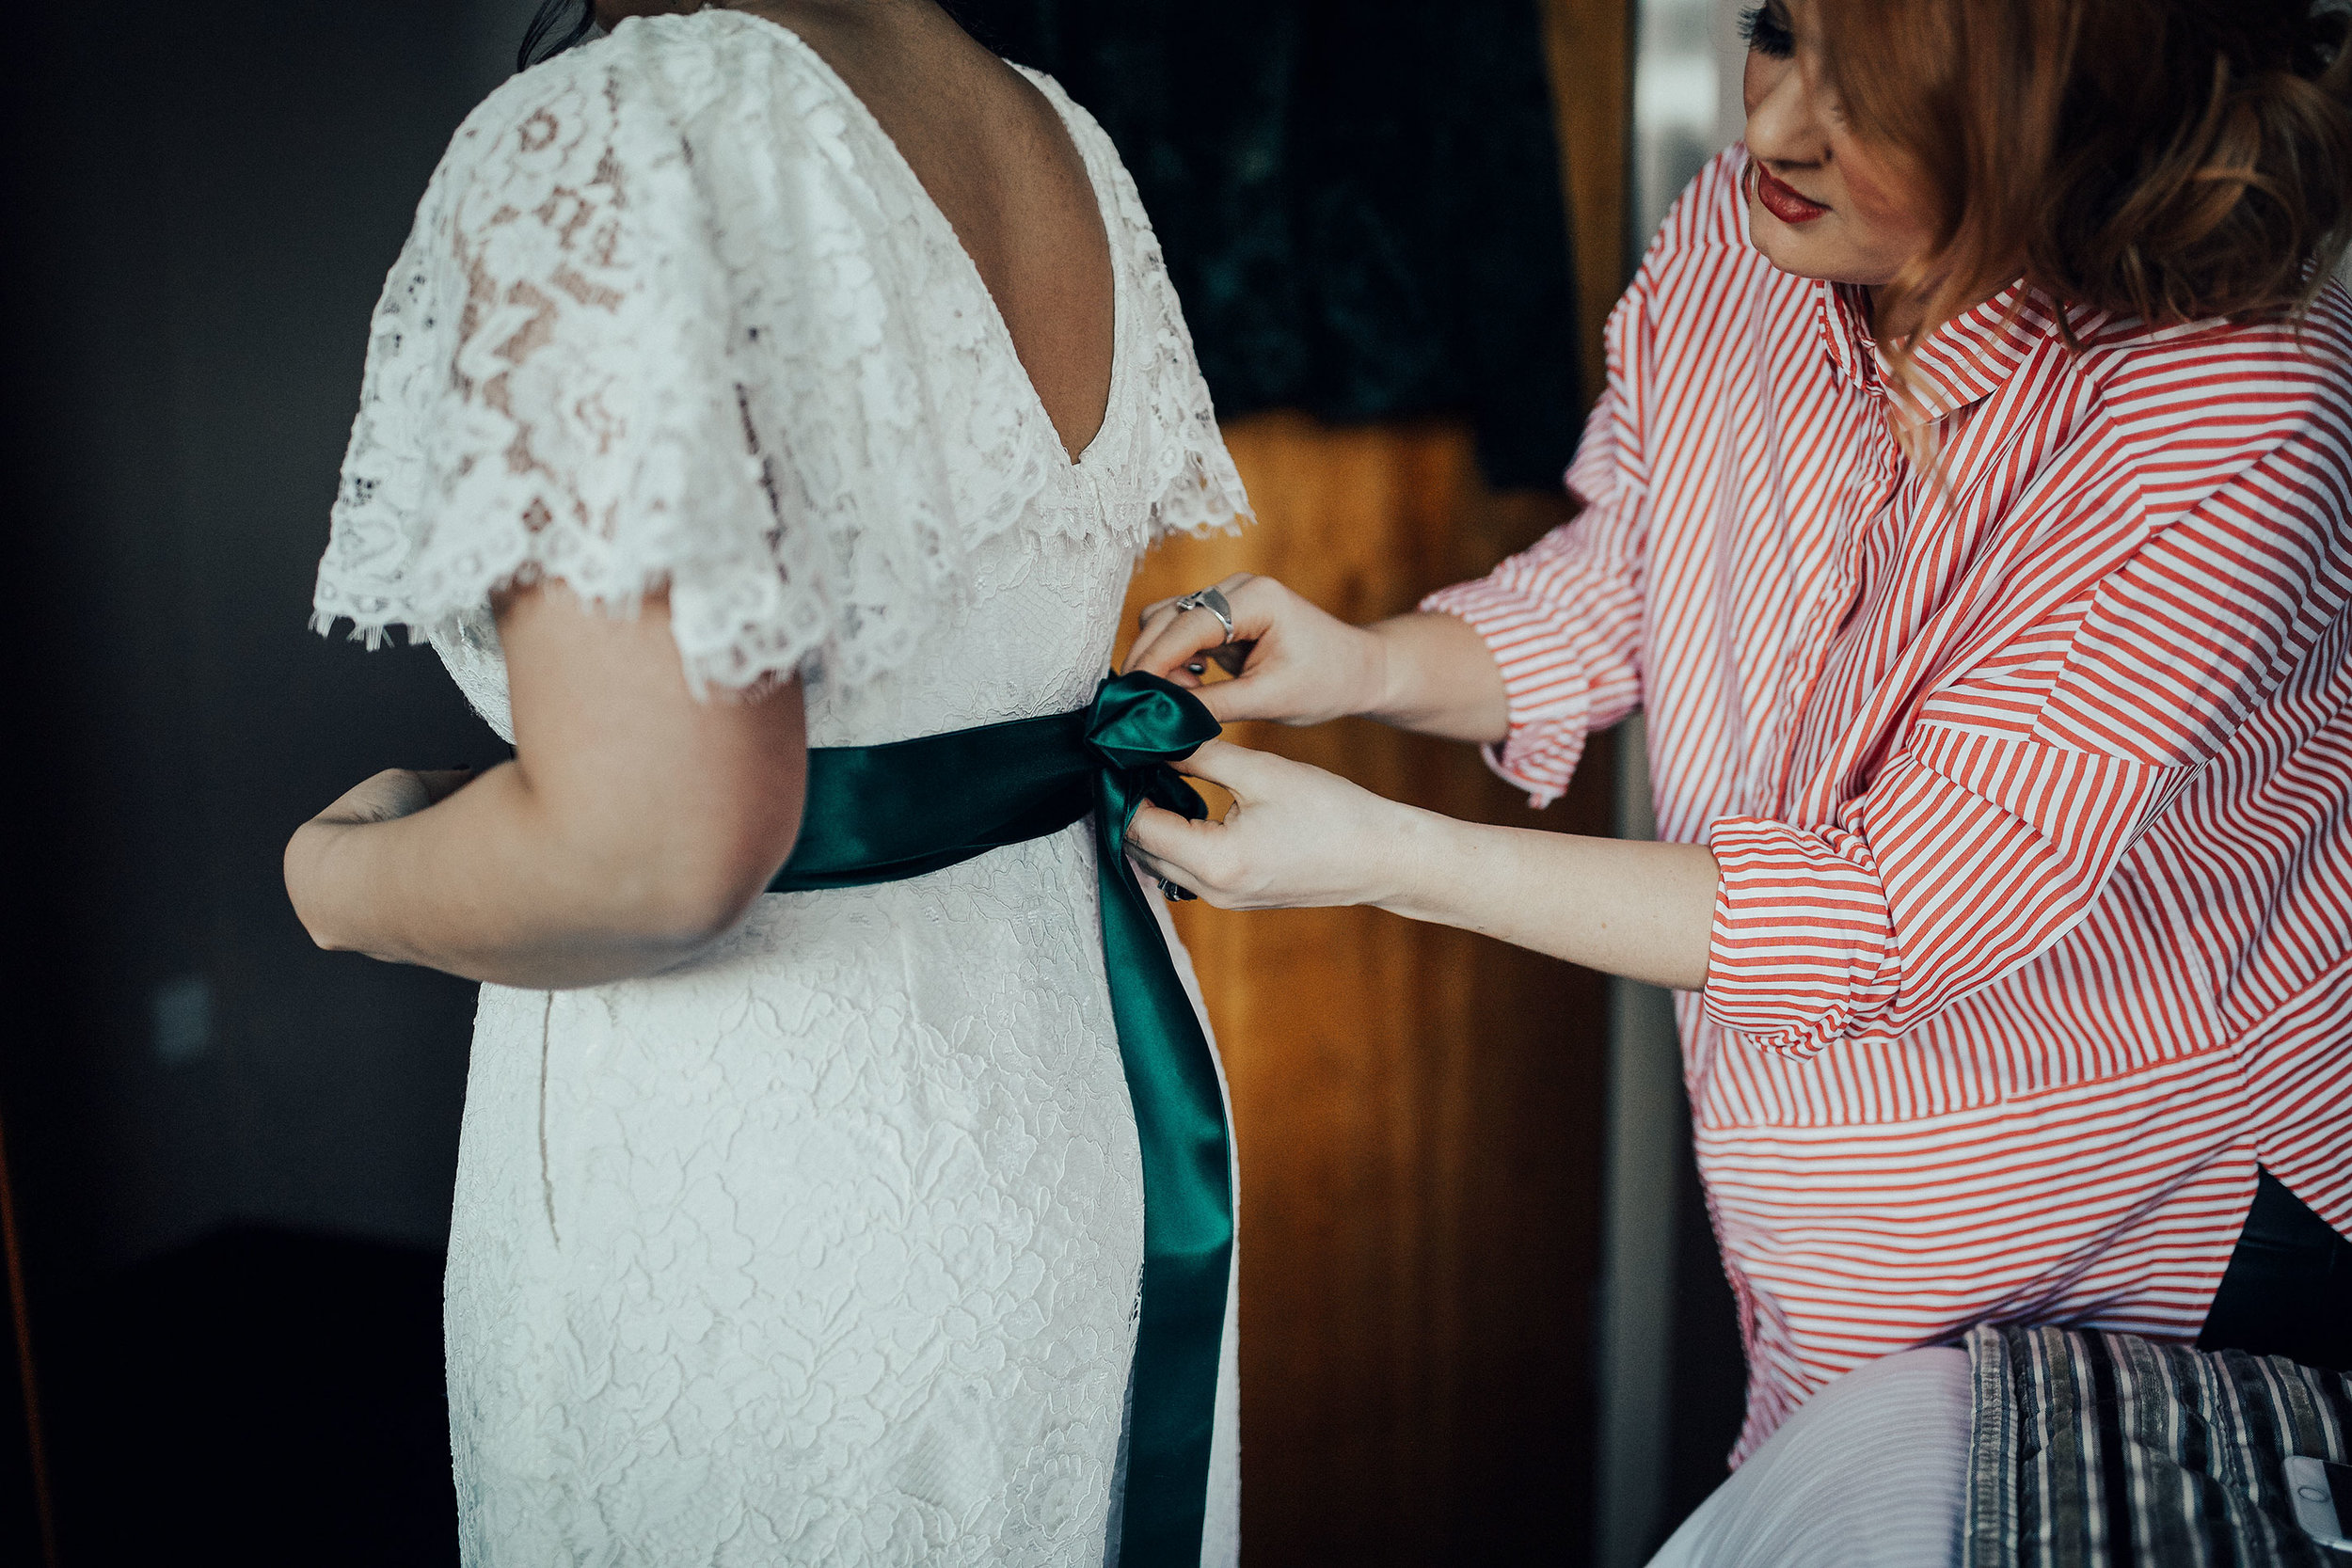 DRYGATE_WEDDING_PHOTOGRAPHER_PJ_PHILLIPS_WEDDING_PHOTOGRAPHY_15.jpg